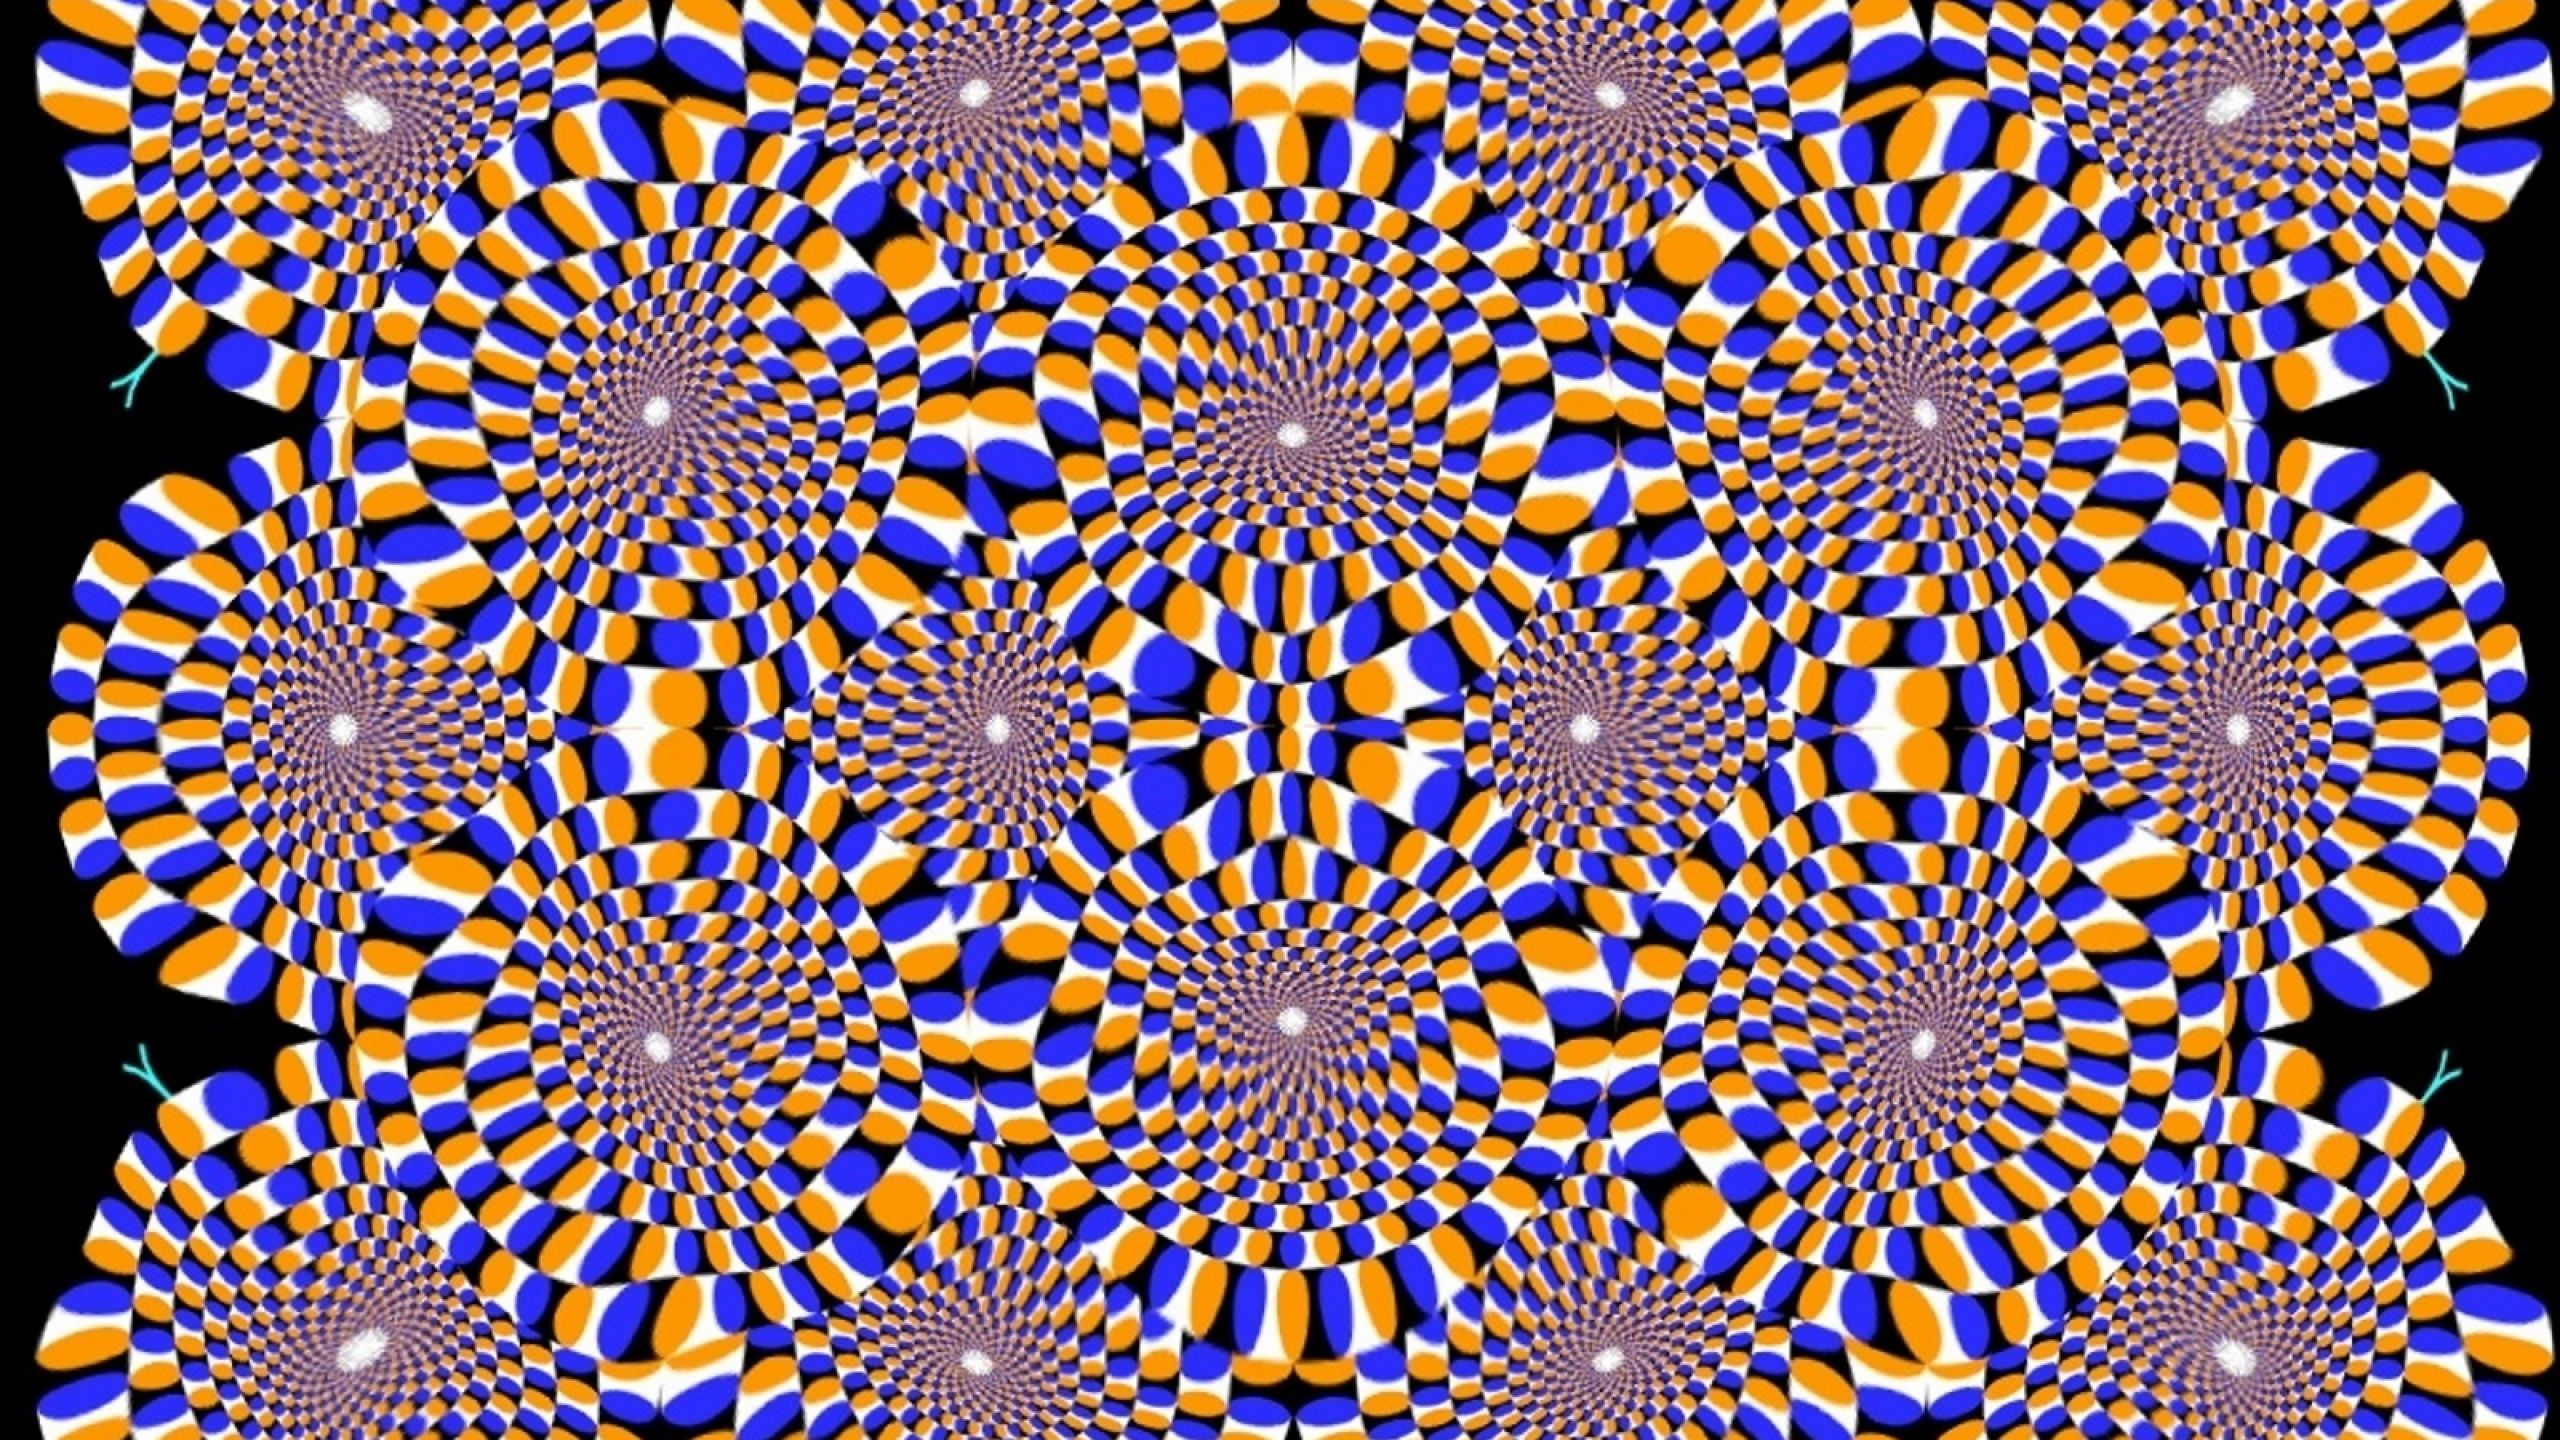 Photos illusion car moving optical illusion spectacular optical - Covers Facebook Background Images Optical Illusions Wallpaper Backgrounds Trippy Timeline Html